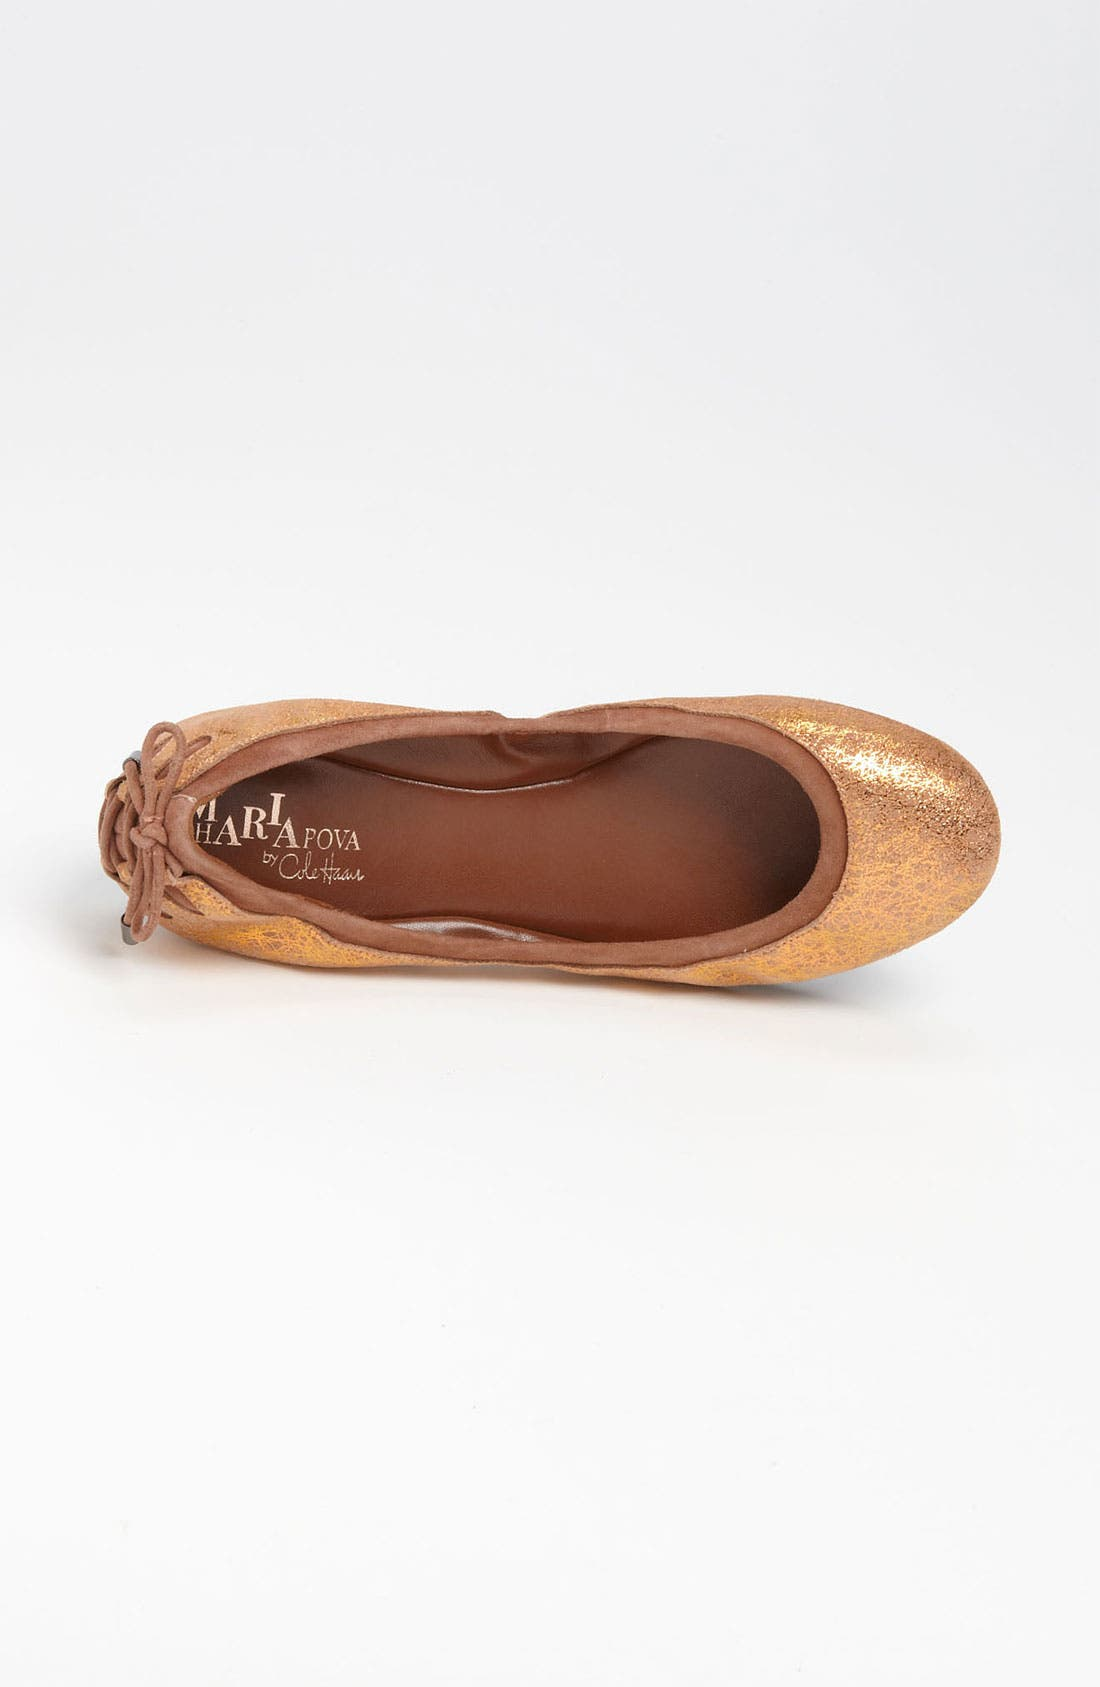 ,                             Maria Sharapova by Cole Haan 'Air Bacara' Flat,                             Alternate thumbnail 102, color,                             800